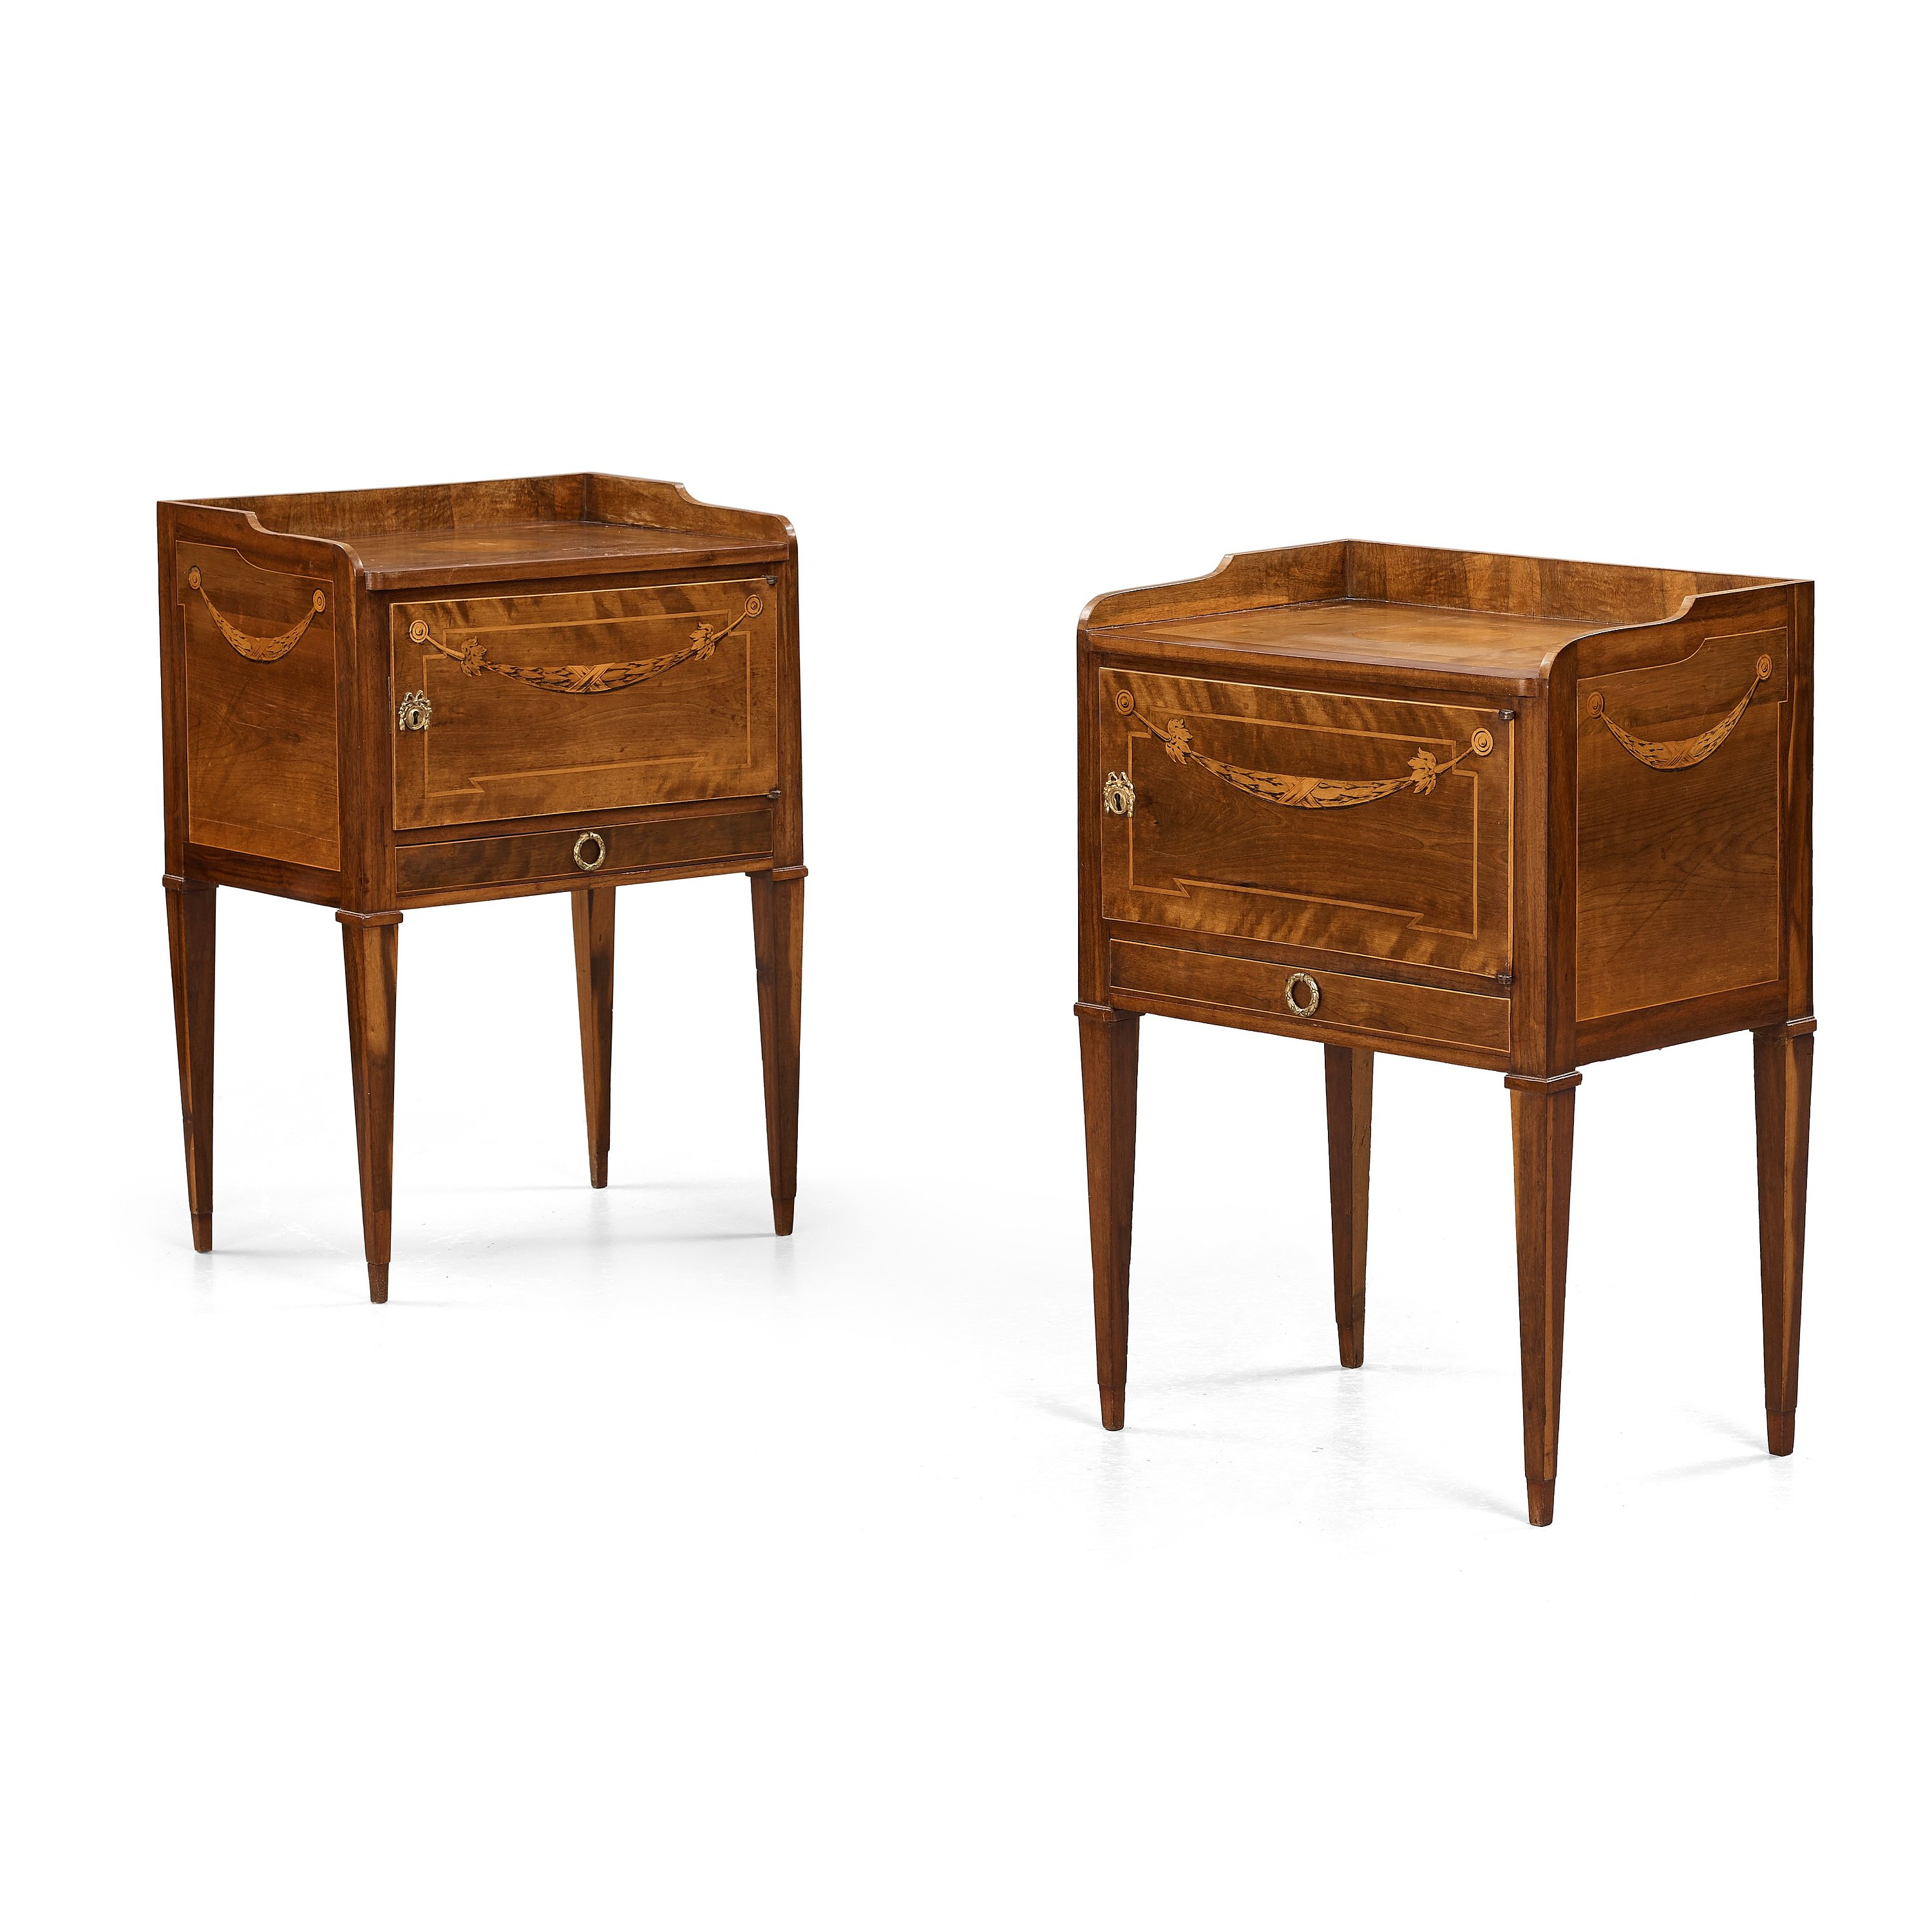 A pair of gustavian bedside tables by georg haupt master in a pair of gustavian bedside tables by georg haupt master in stockholm 1770 1784 not signed bukowskis watchthetrailerfo